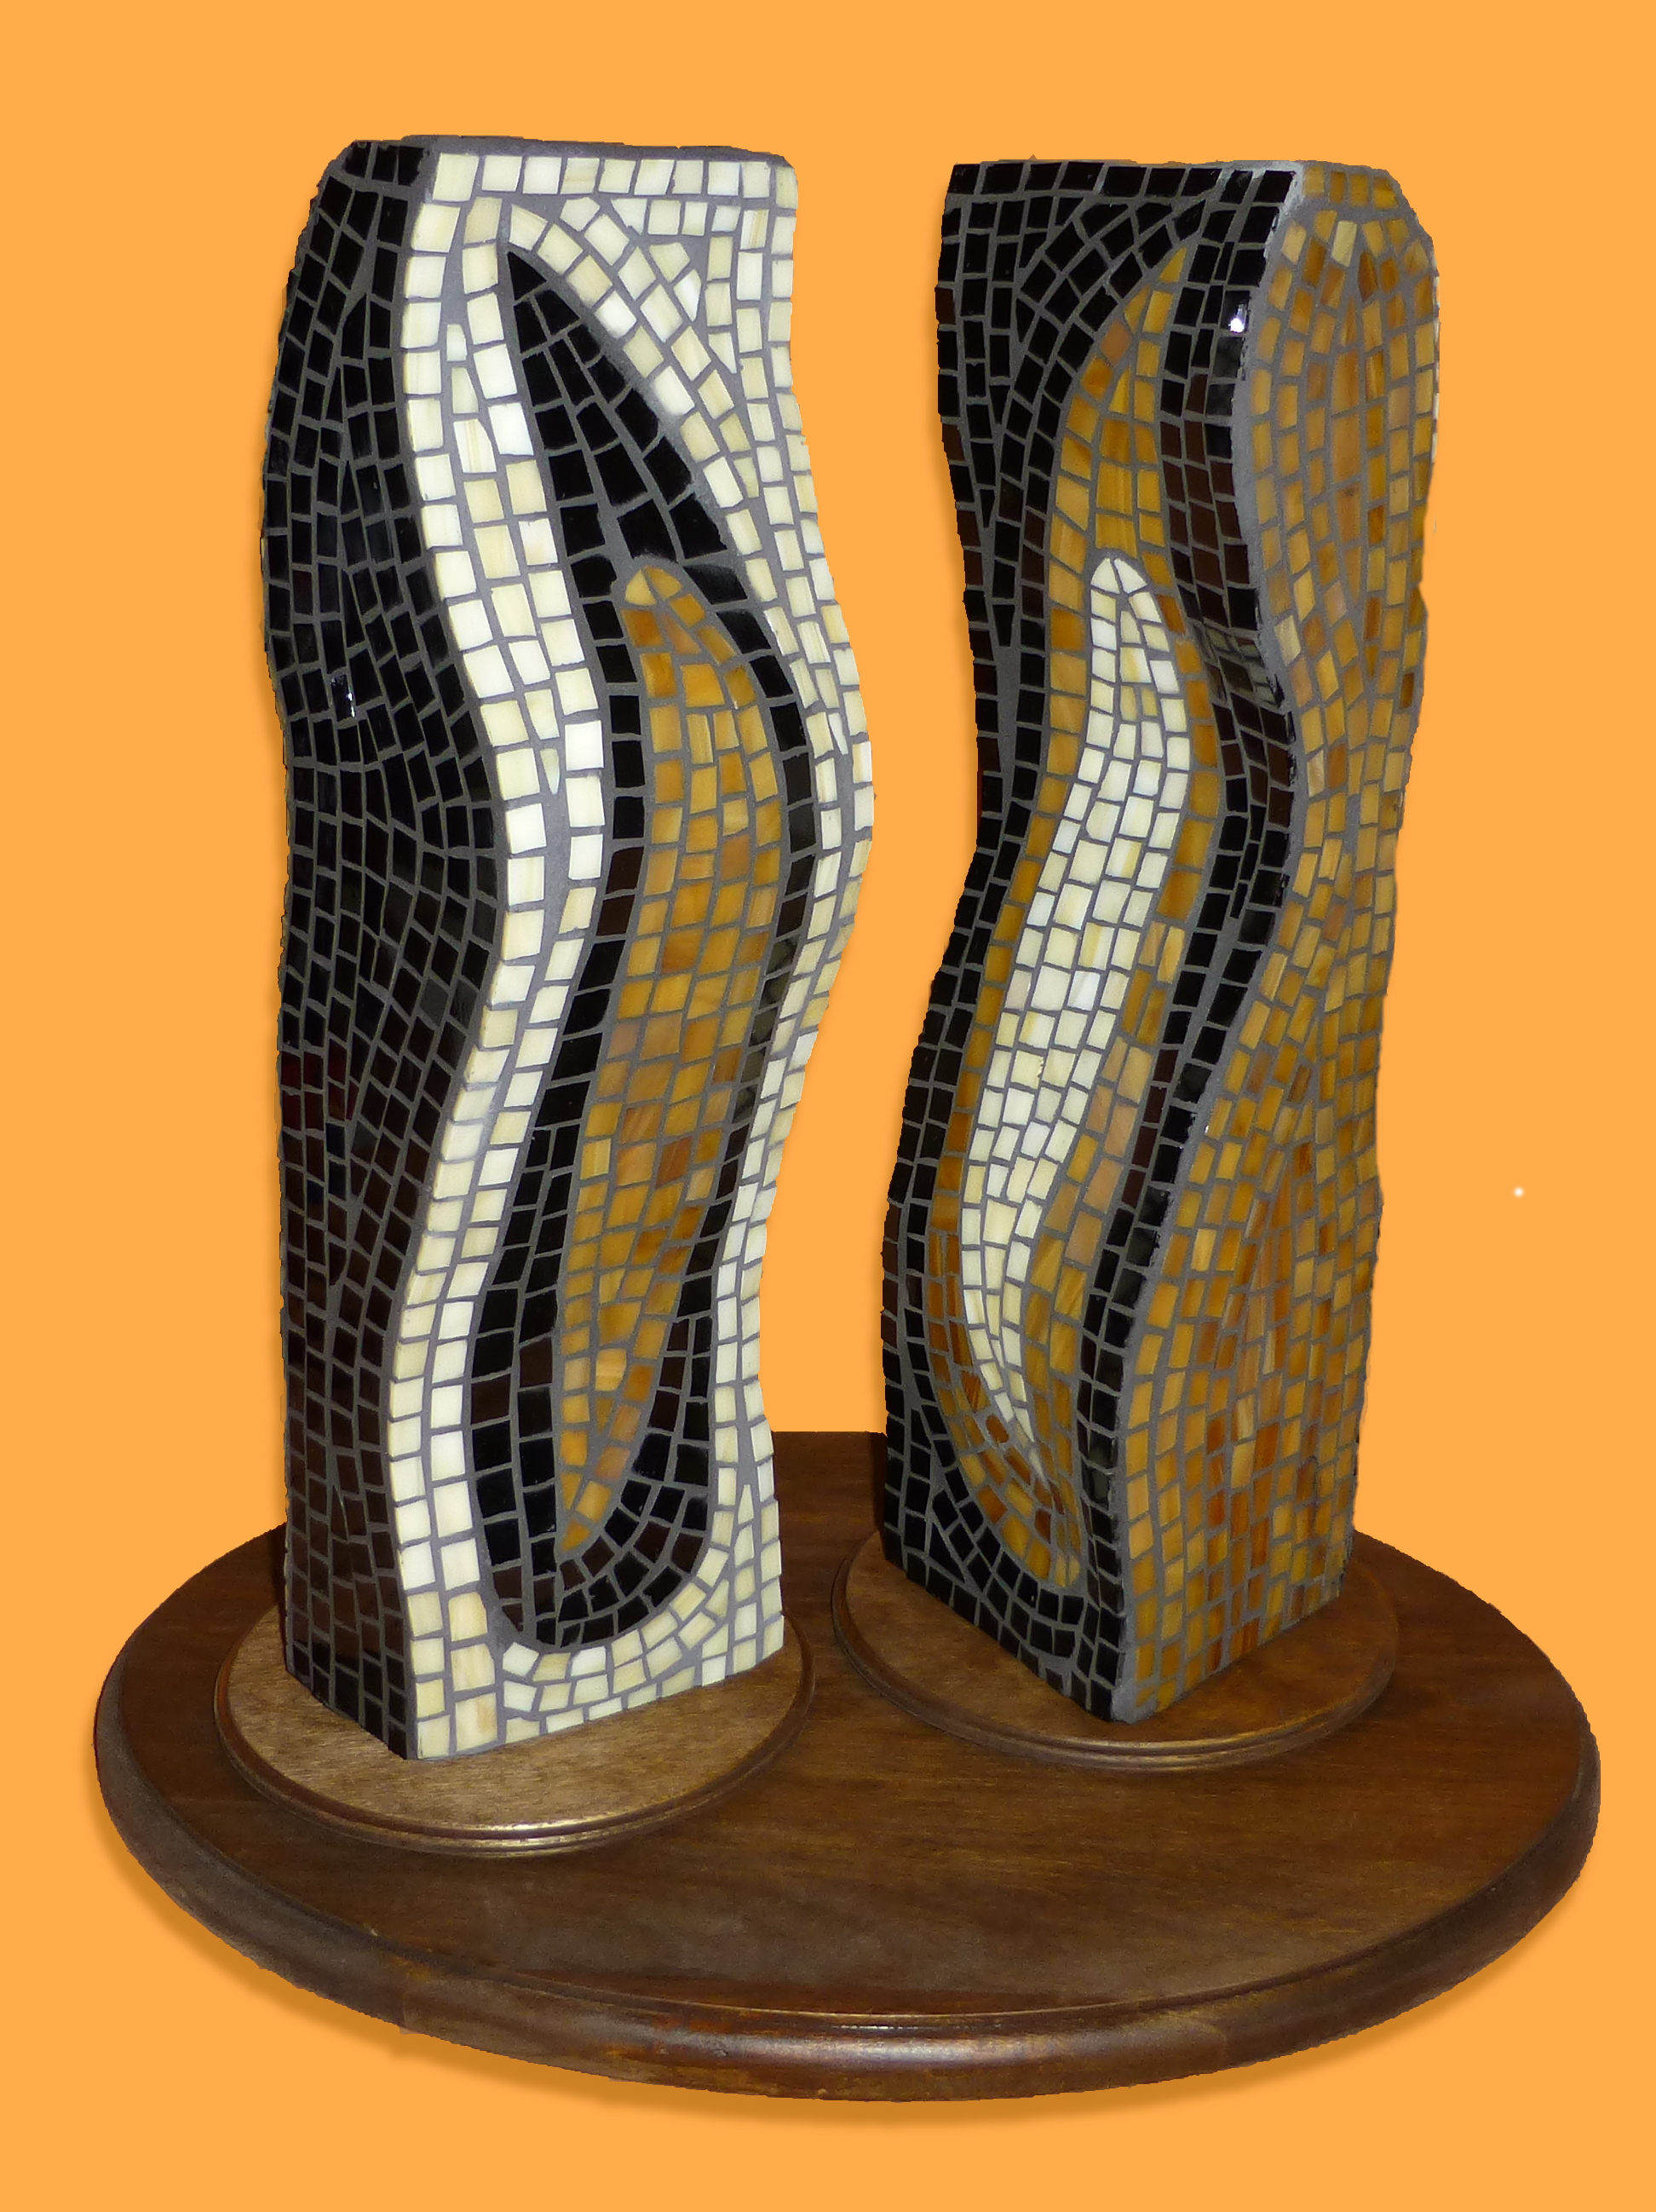 Five Artists to Participate in Sculpture Demonstrations Sept. 19 in the Library